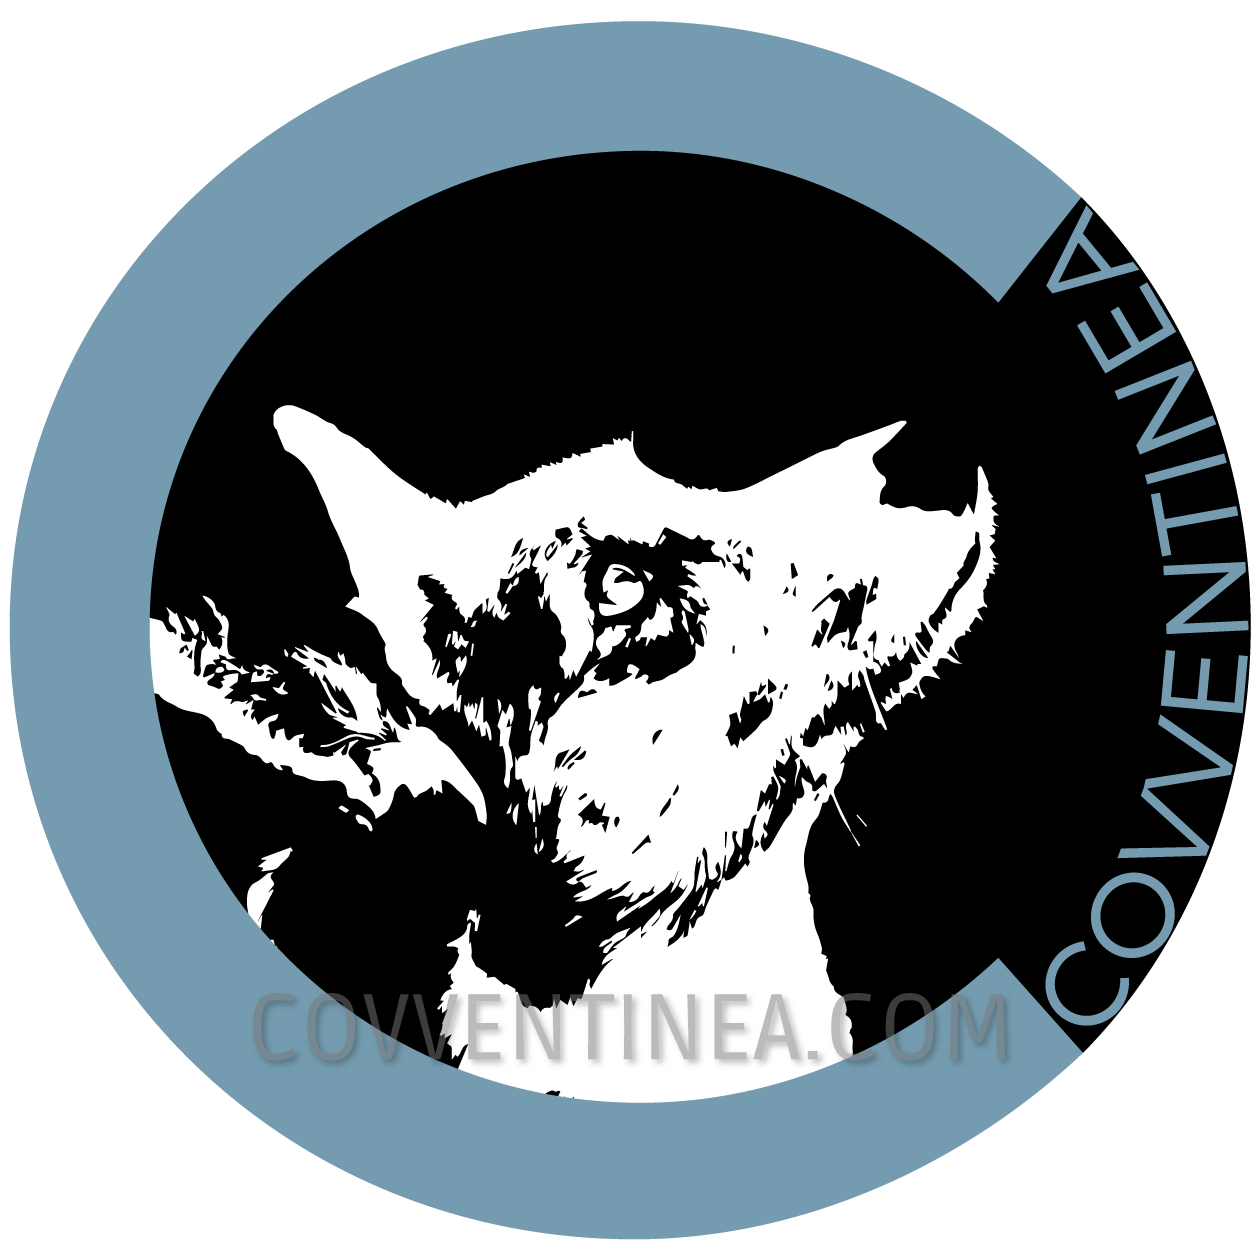 Logo Covventinea Kennel Welsh Corgi Cardigan